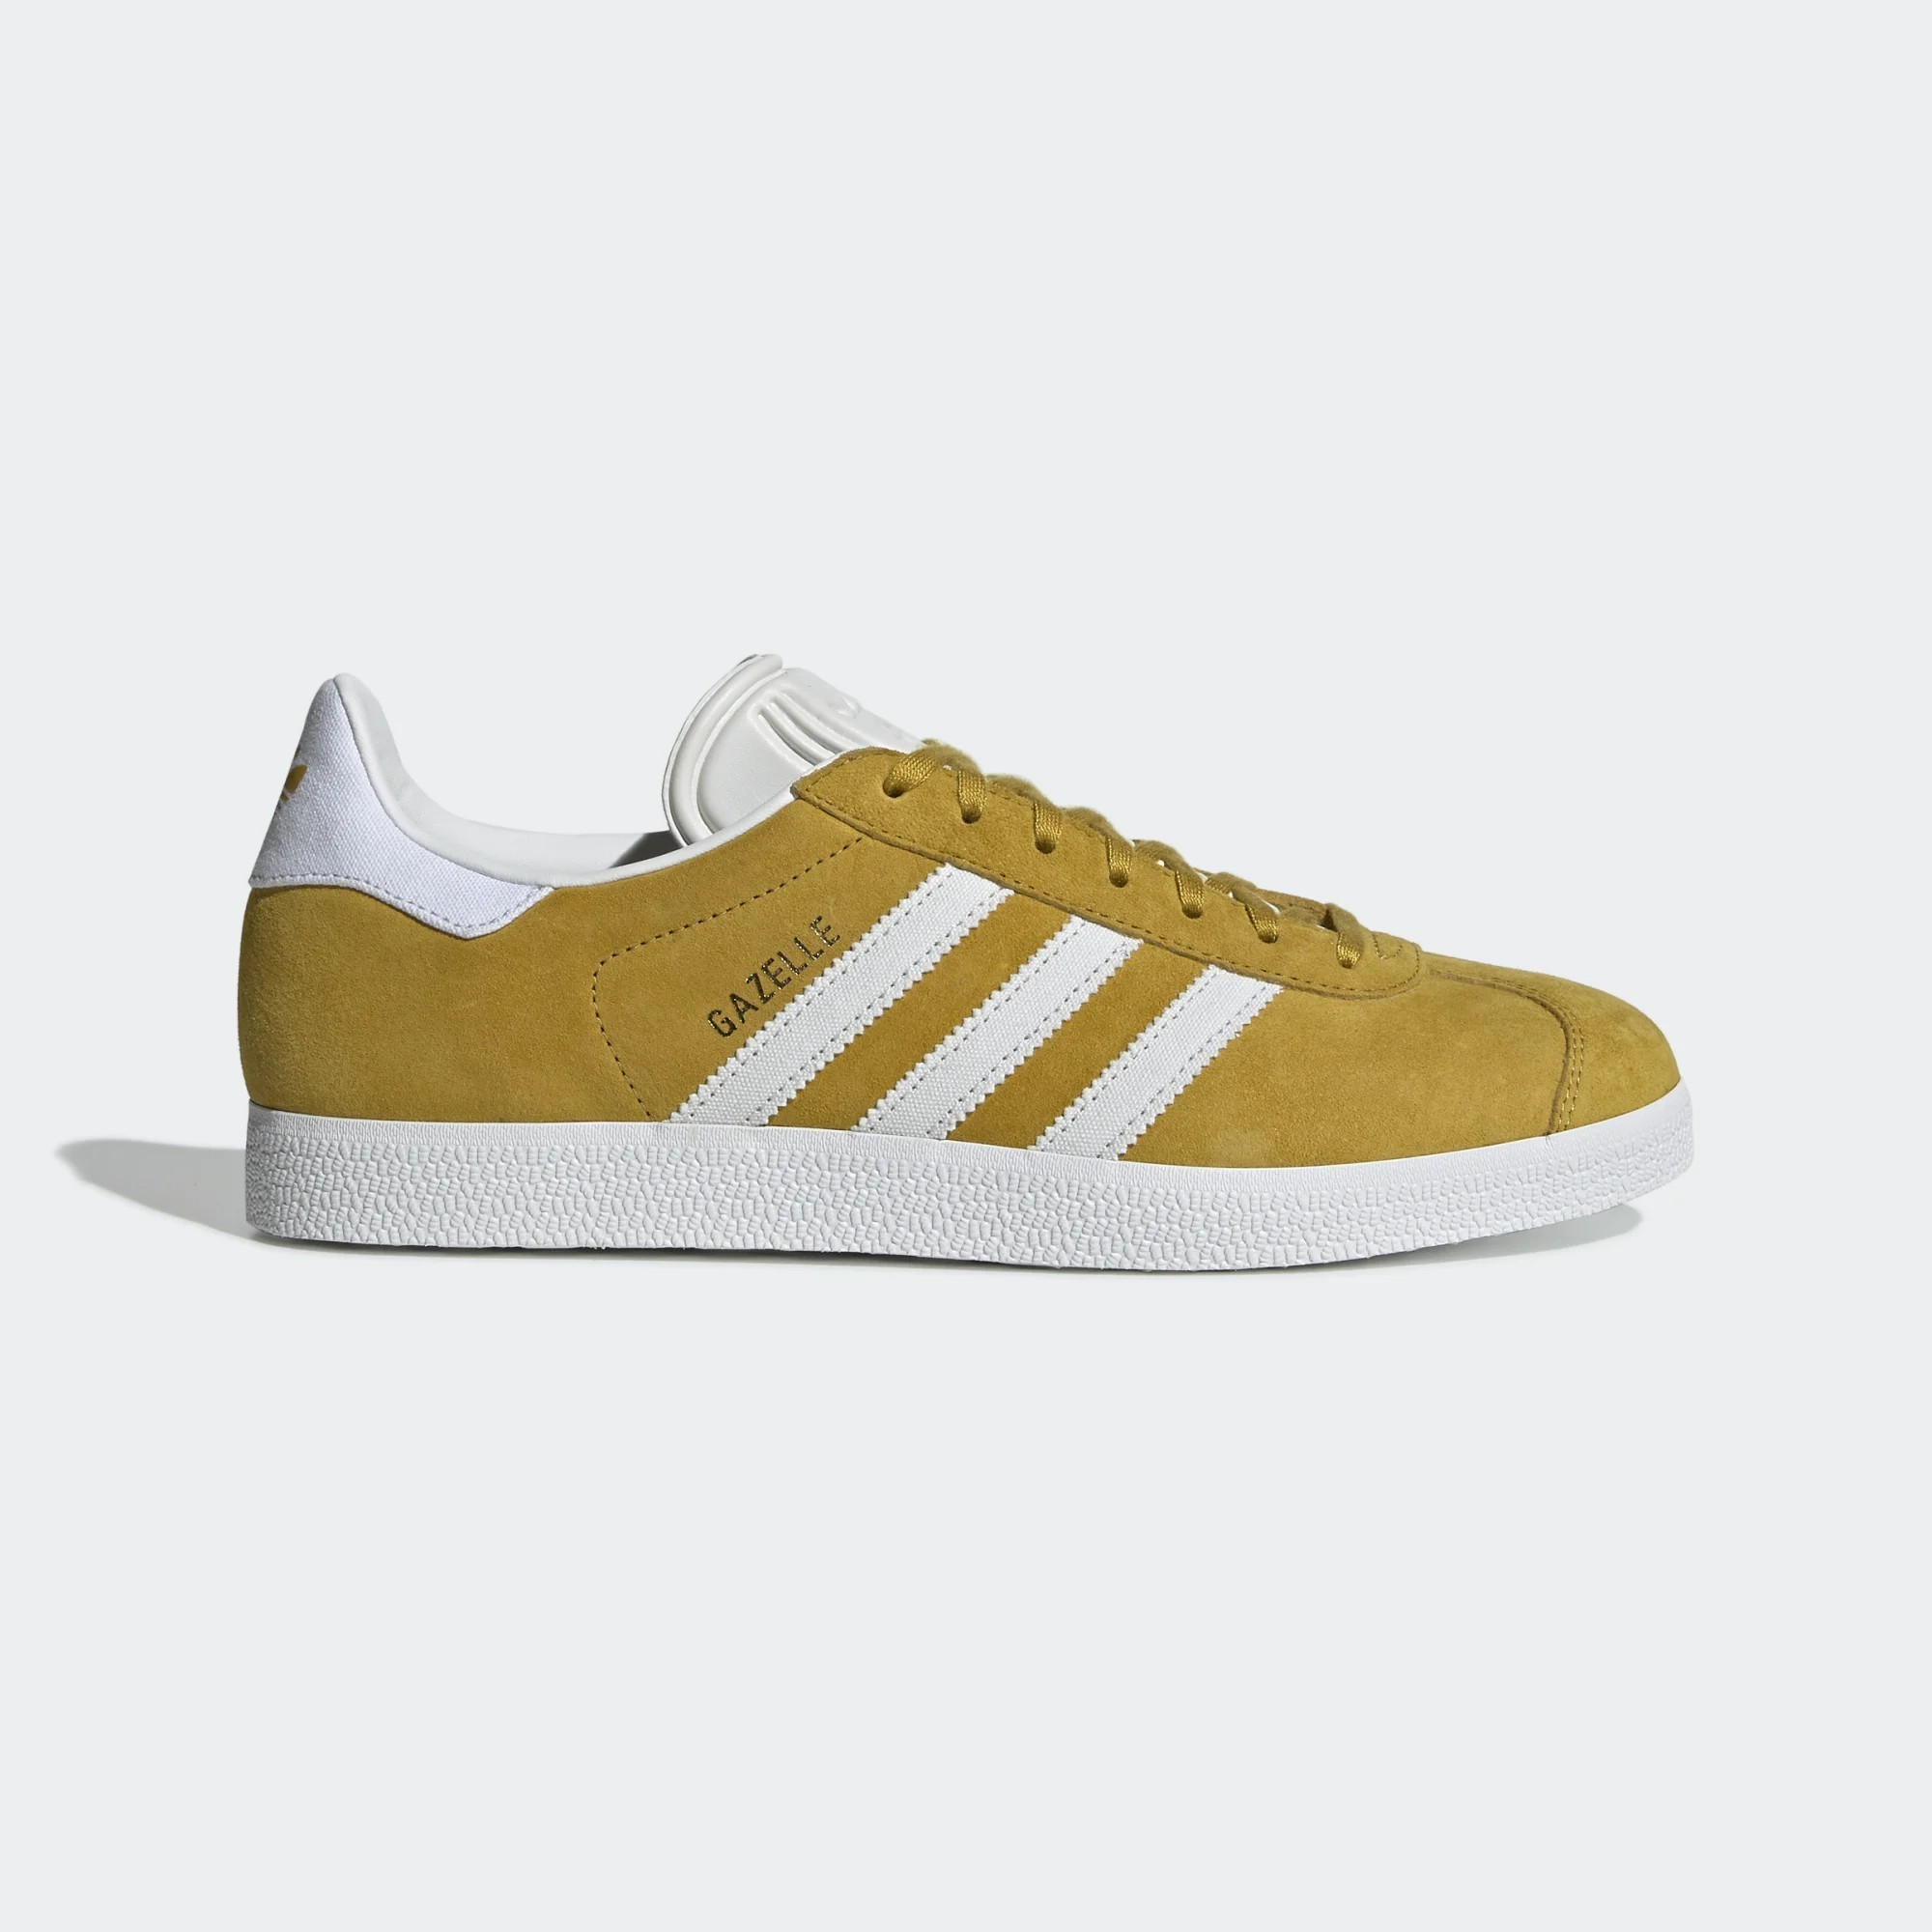 adidas DA8870 Gazelle Raw Ochre/White